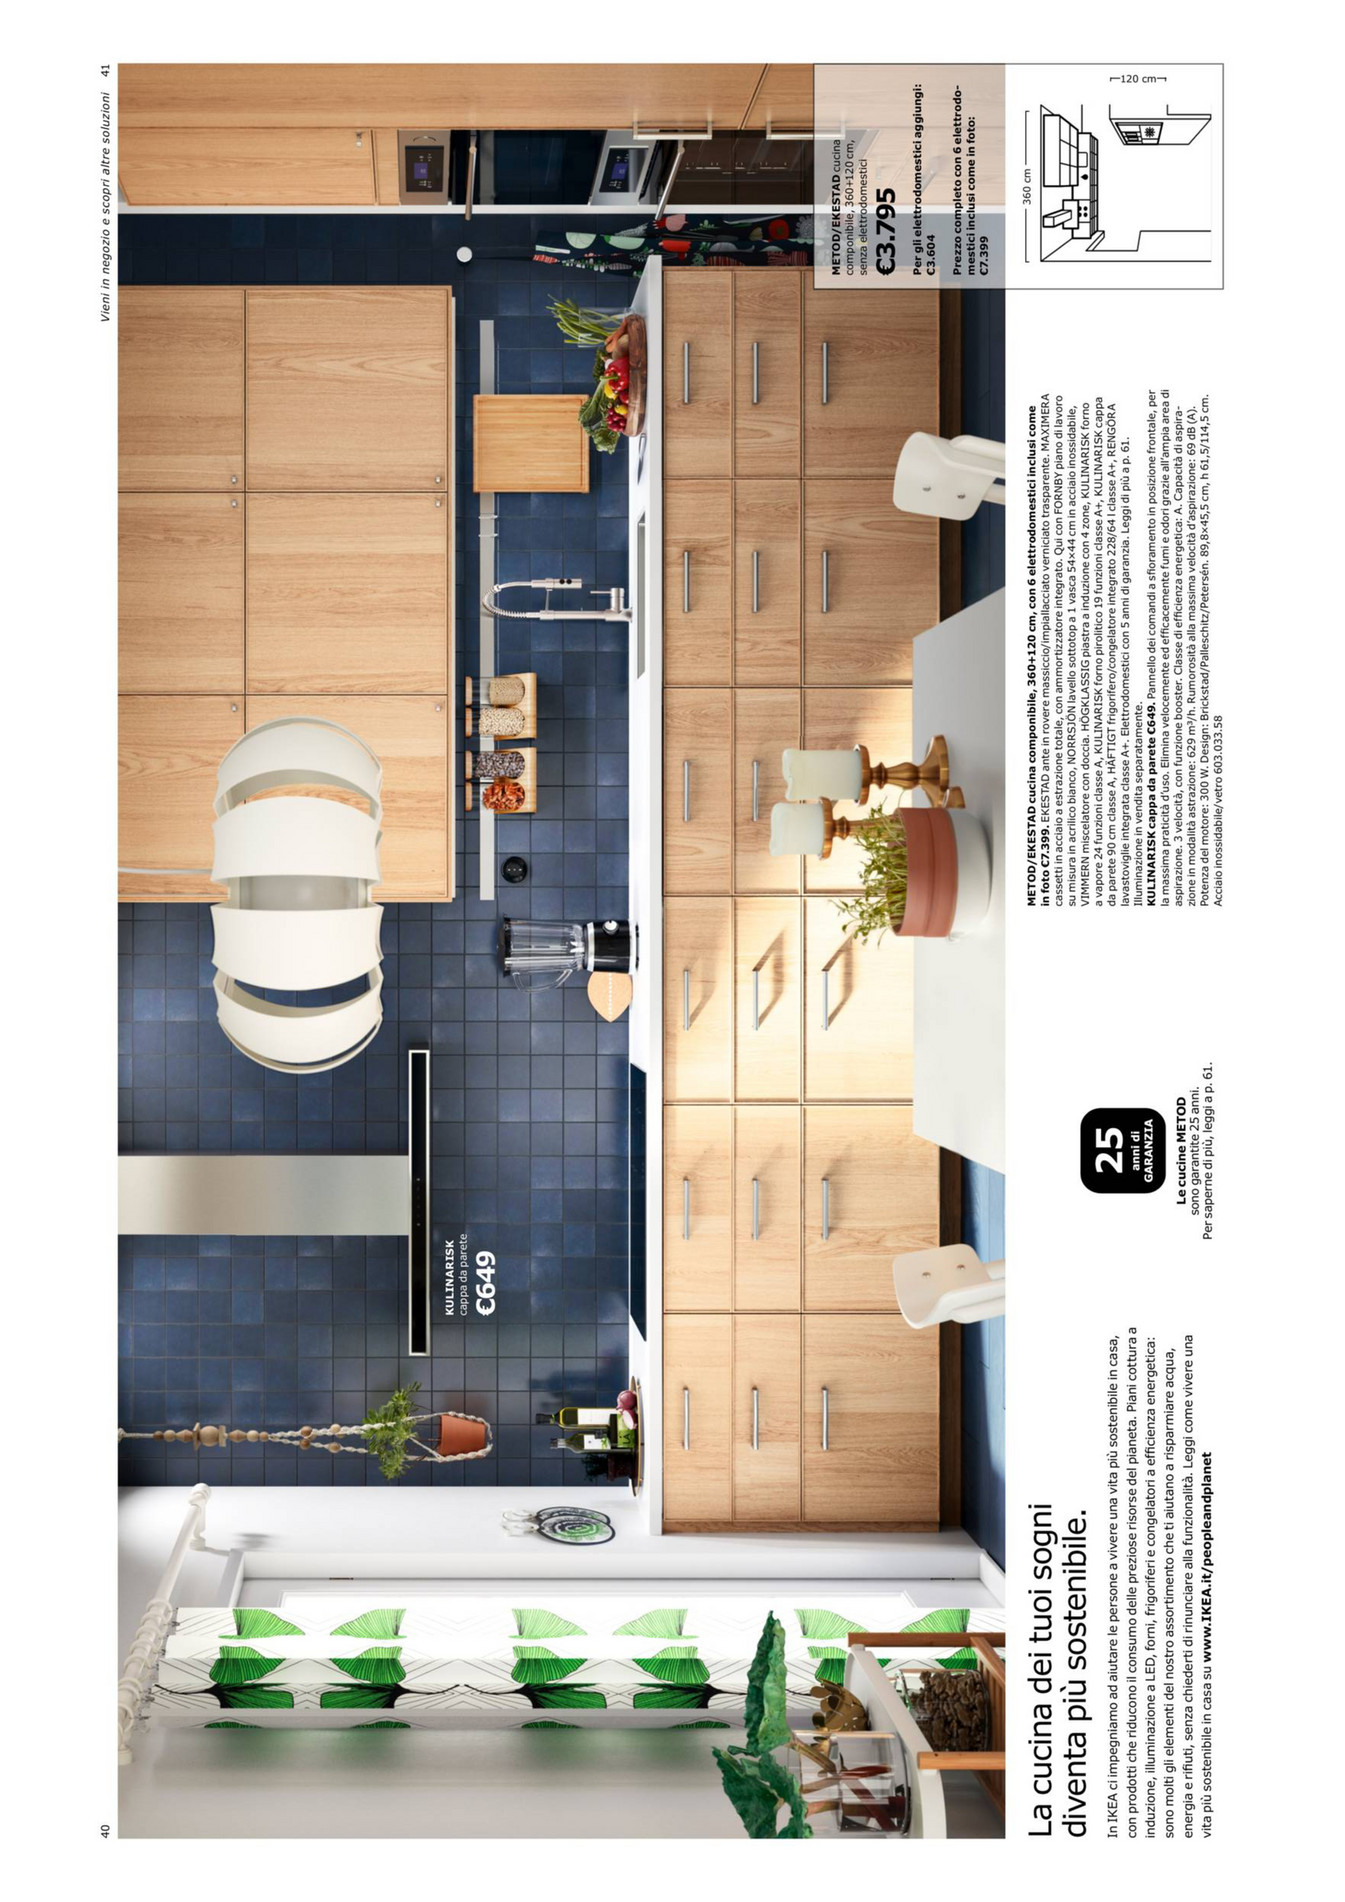 Best Www.ikea.it Cucine Catalogo Gallery - head-lice.us - head-lice.us